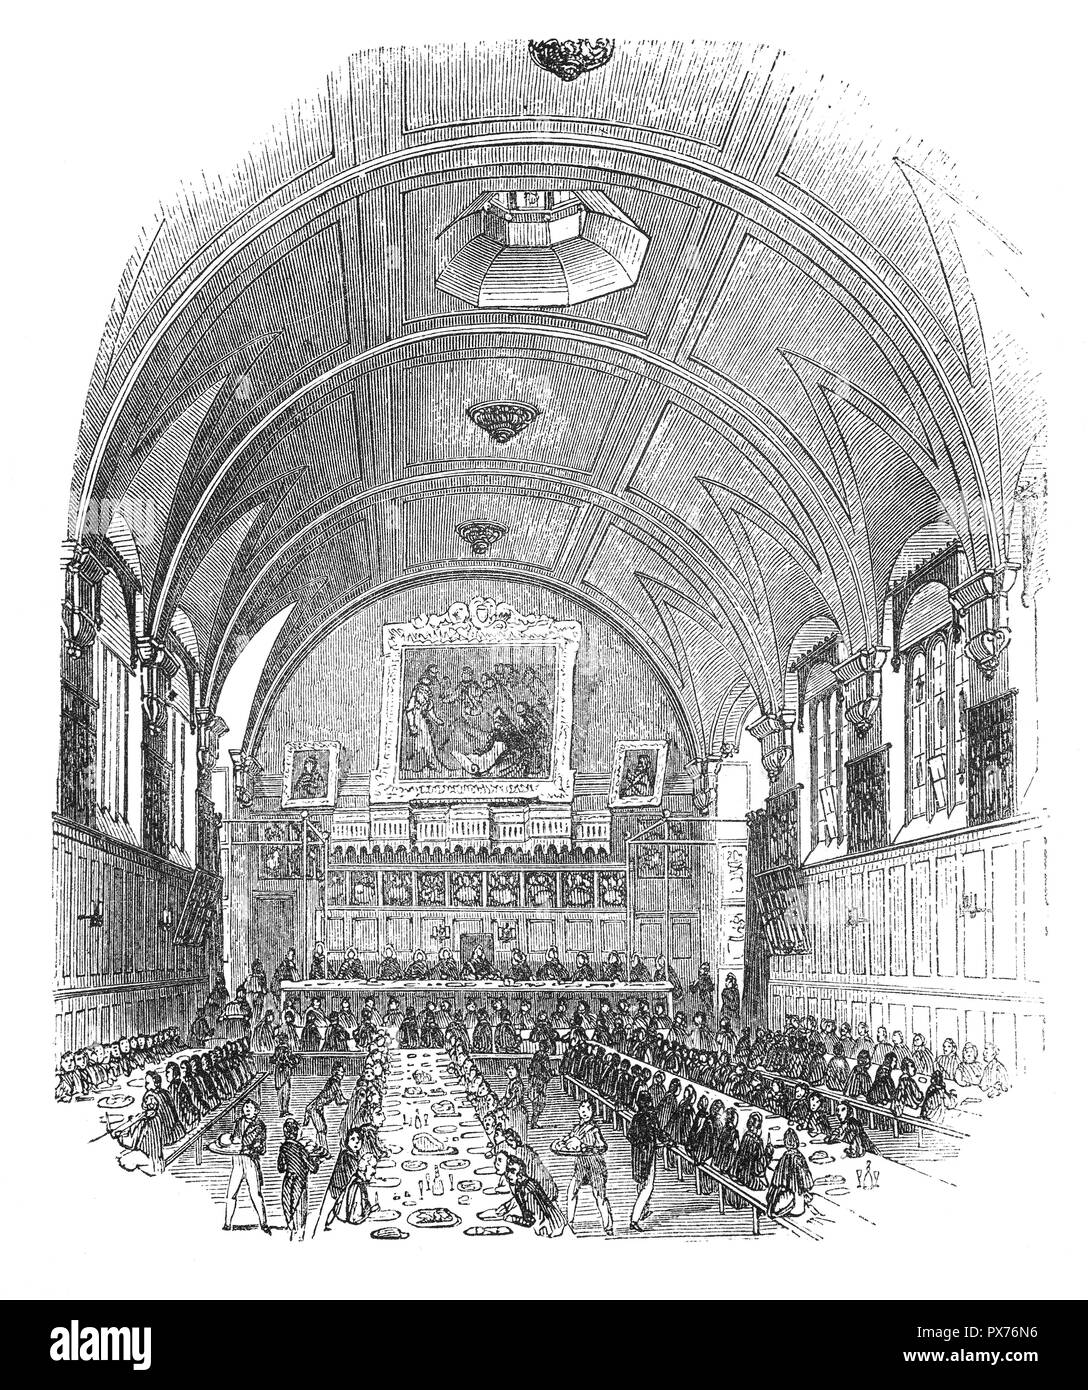 The Hall of the Honourable Society of Lincoln's Inn, one of the four Inns of Court in London to which barristers of England and Wales belong and where they are called to the Bar. (The other three are Middle Temple, Inner Temple and Gray's Inn.) Lincoln's Inn is recognised to be one of the world's most prestigious professional bodies of judges and lawyers. It is situated in Holborn, in the London Borough of Camden, just on the border with the City of London and the City of Westminster. Stock Photo